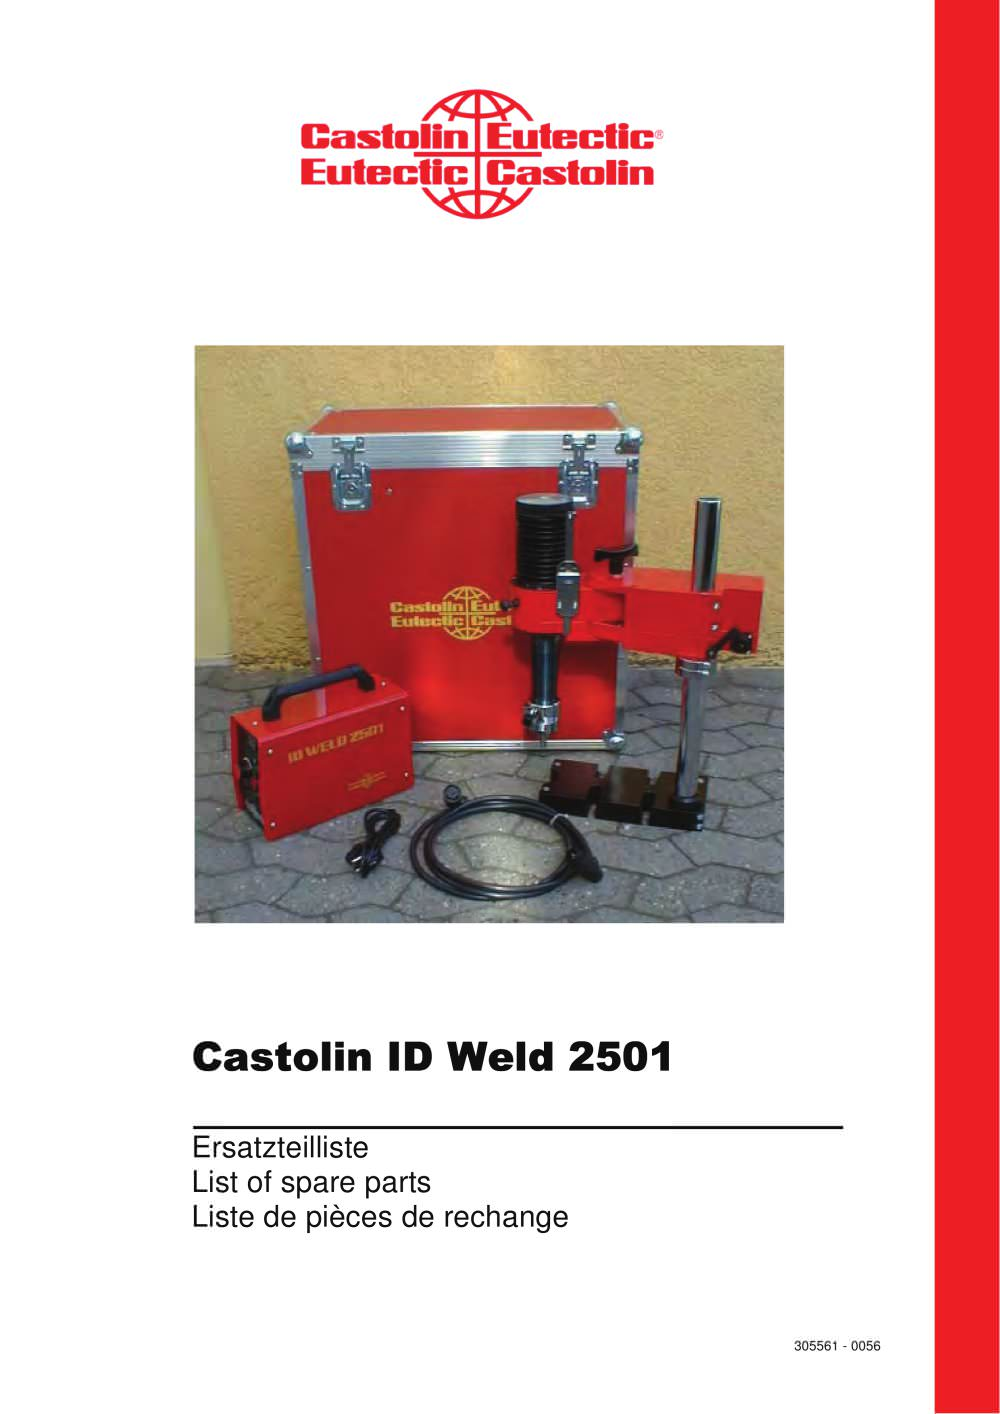 Castolin Welding Castolin id Weld 2501 List of